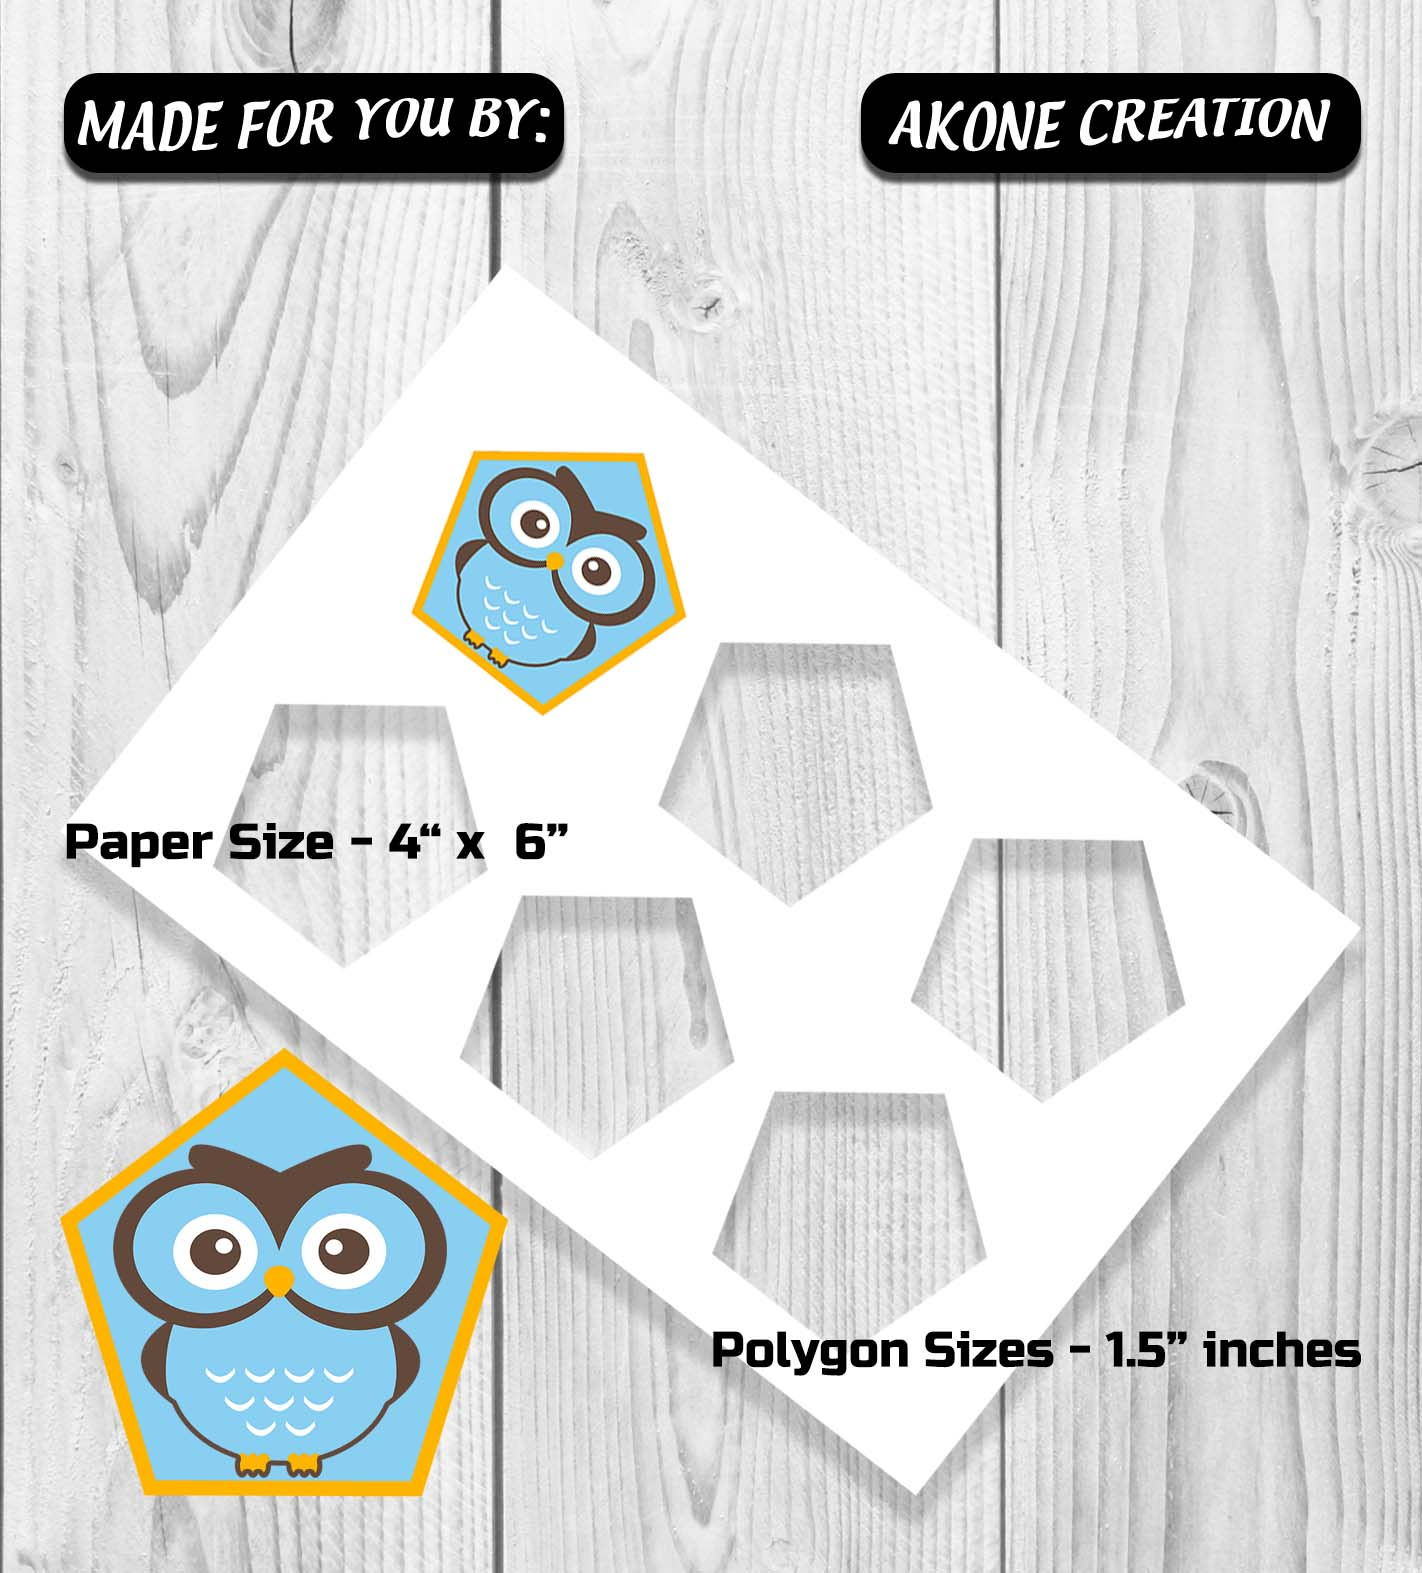 Customizable Polygon Template 4x6, Collage Set Clear PNG PSD Make ...